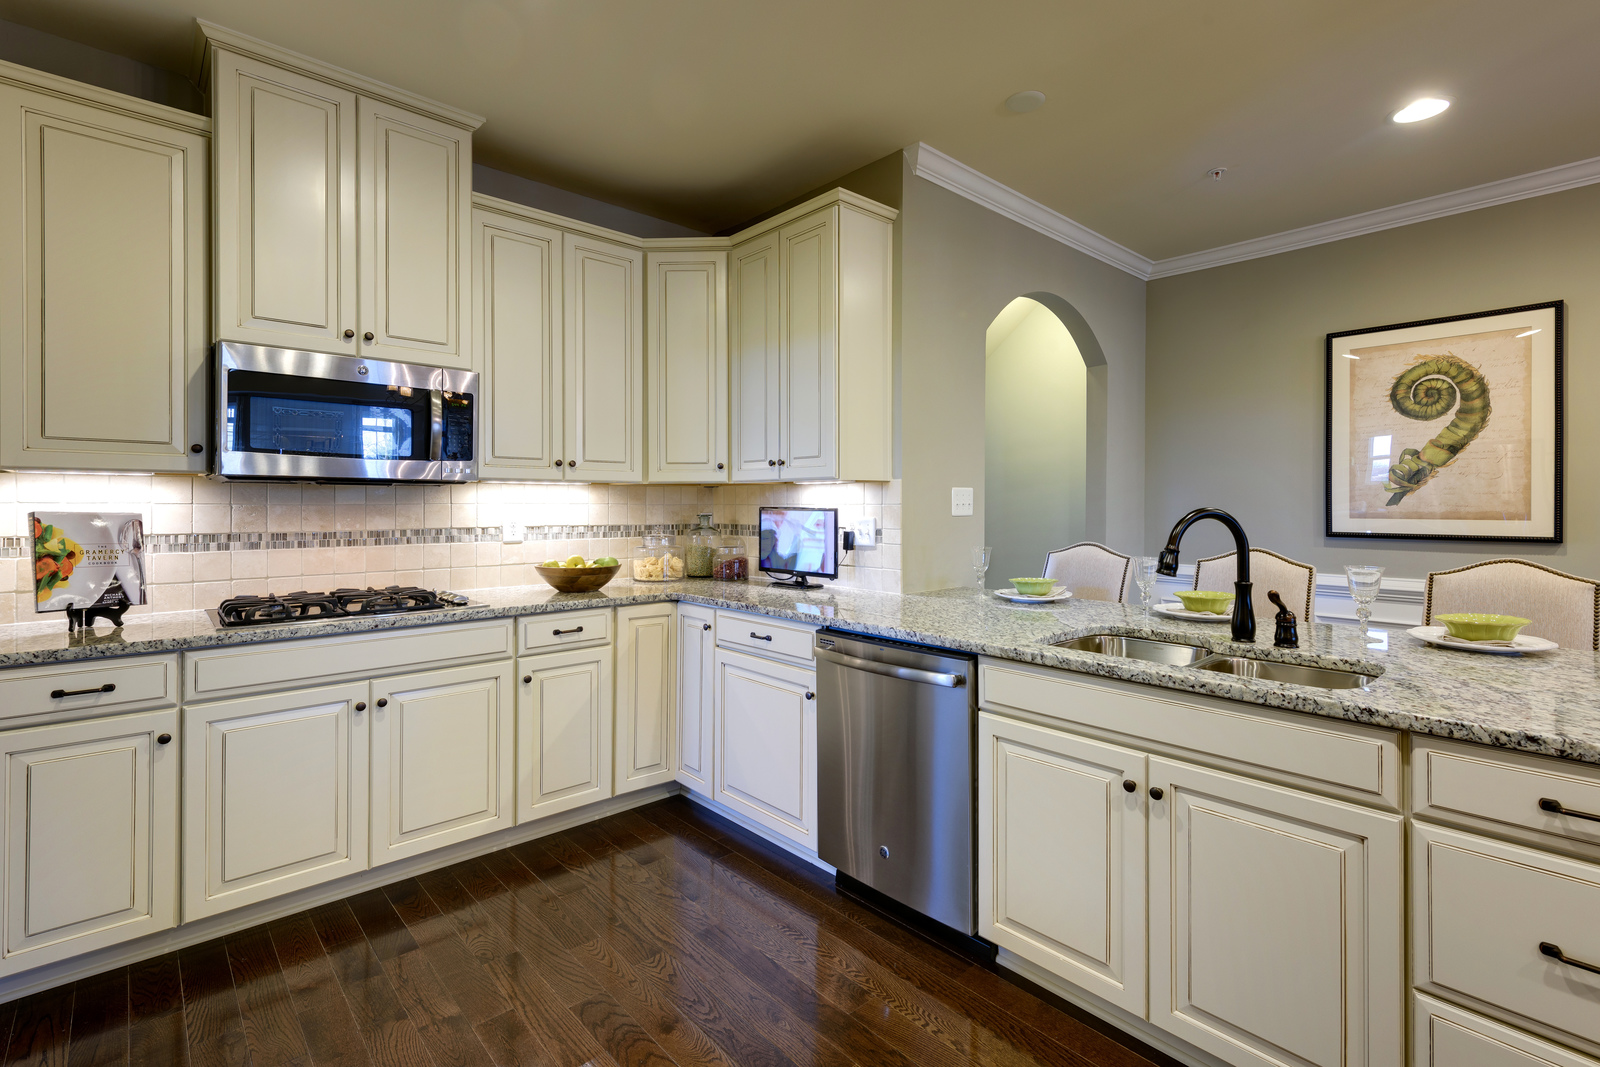 Your gourmet kitchen with custom cabinetry will serve as the perfect place to create delicious dinners